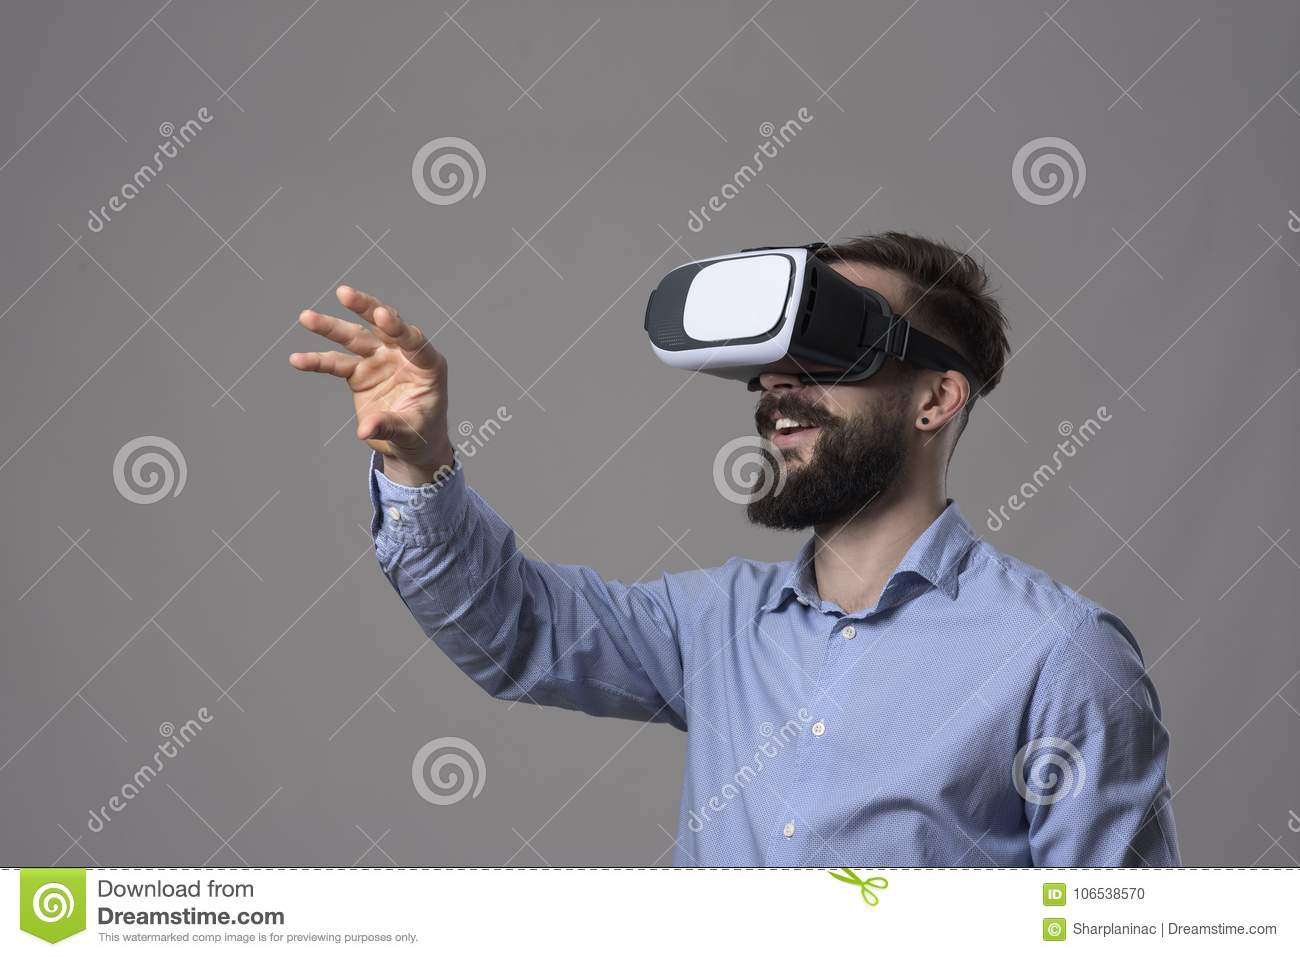 1b700e8d20c4 Amazing virtual reality experience of young business man wearing vr glasses  and gesturing screen by hand over gray studio background with copyspace